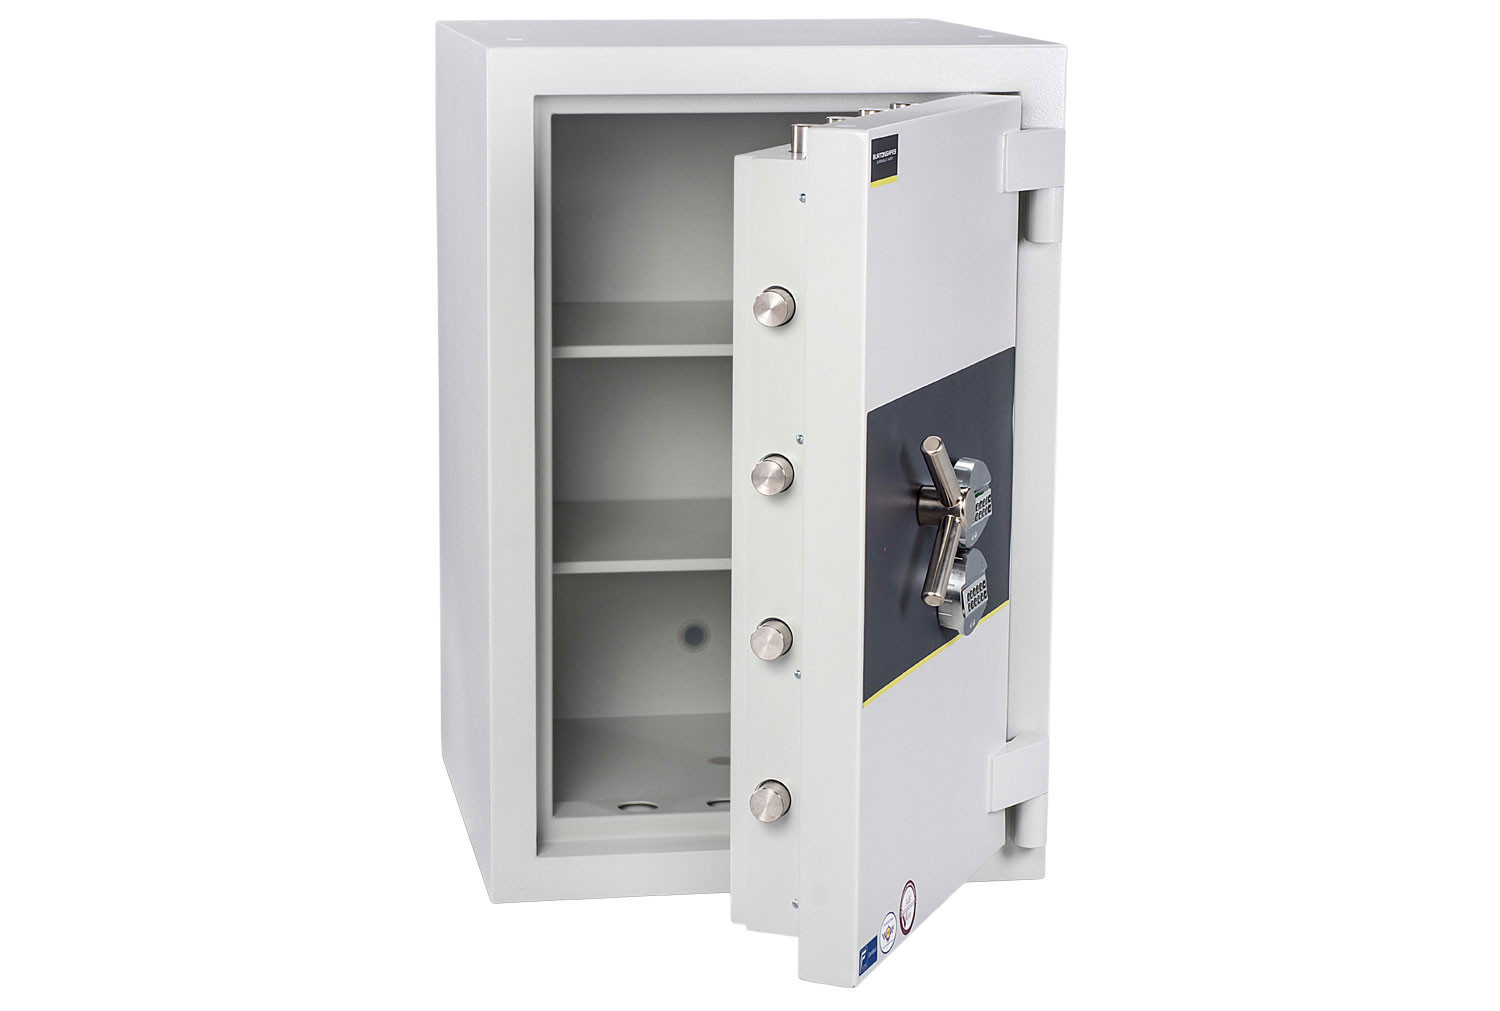 Burton Eurovault Aver Grade 5 Size 3 Safe With Dual Electronic Lock (203ltrs)